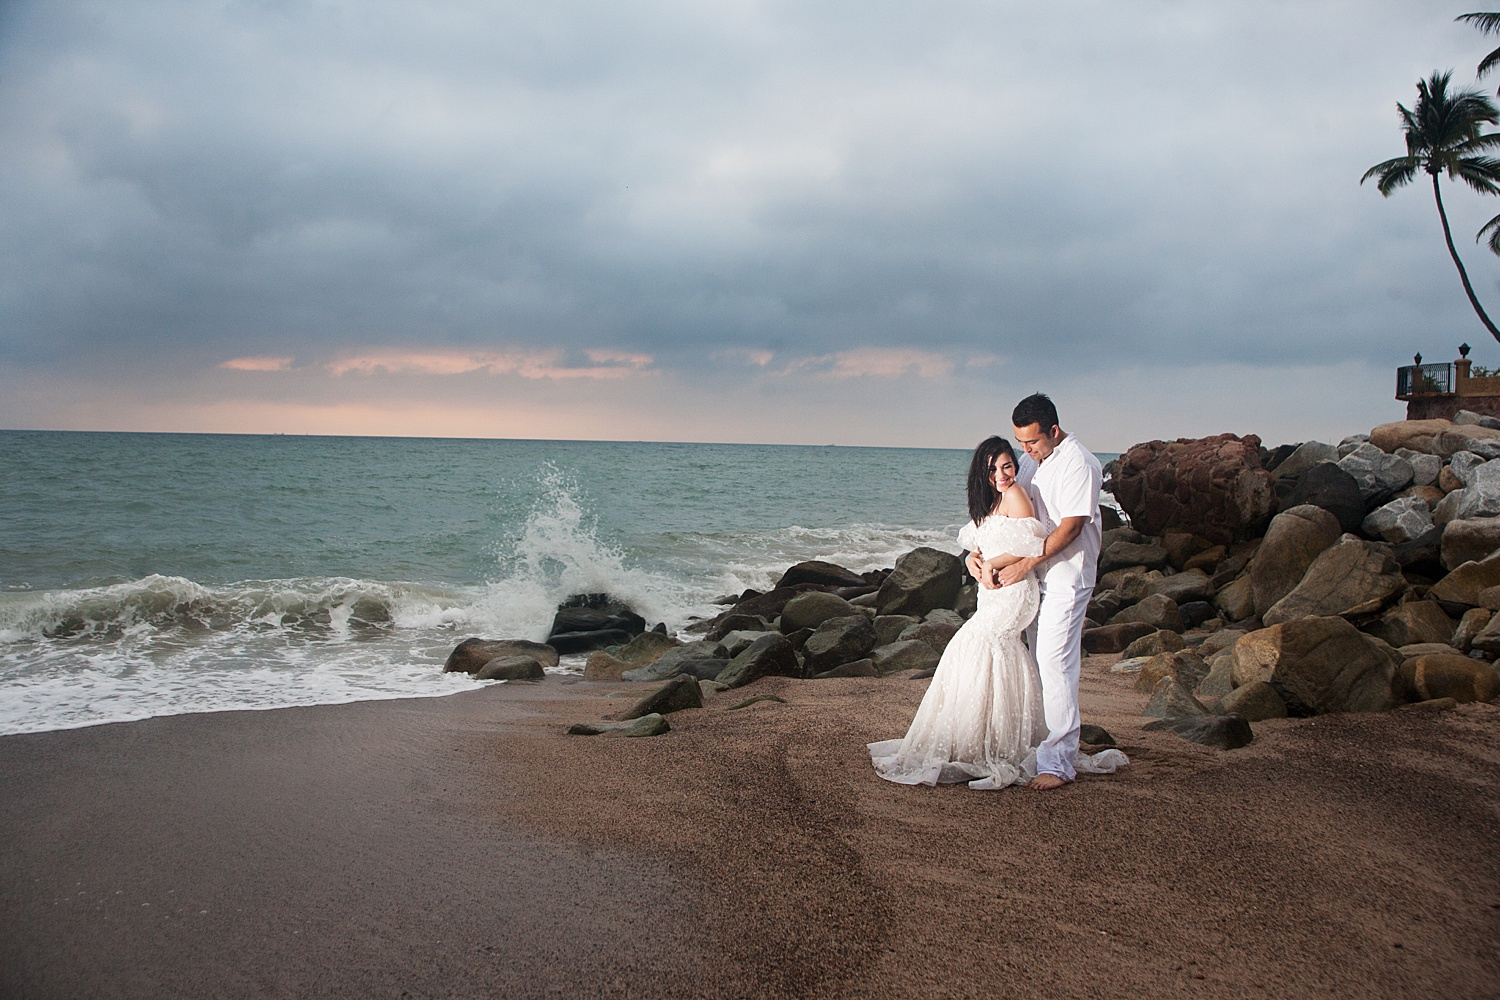 Image: Only one flash was used to camera left pointed at clients directly while I stood about 45 deg...